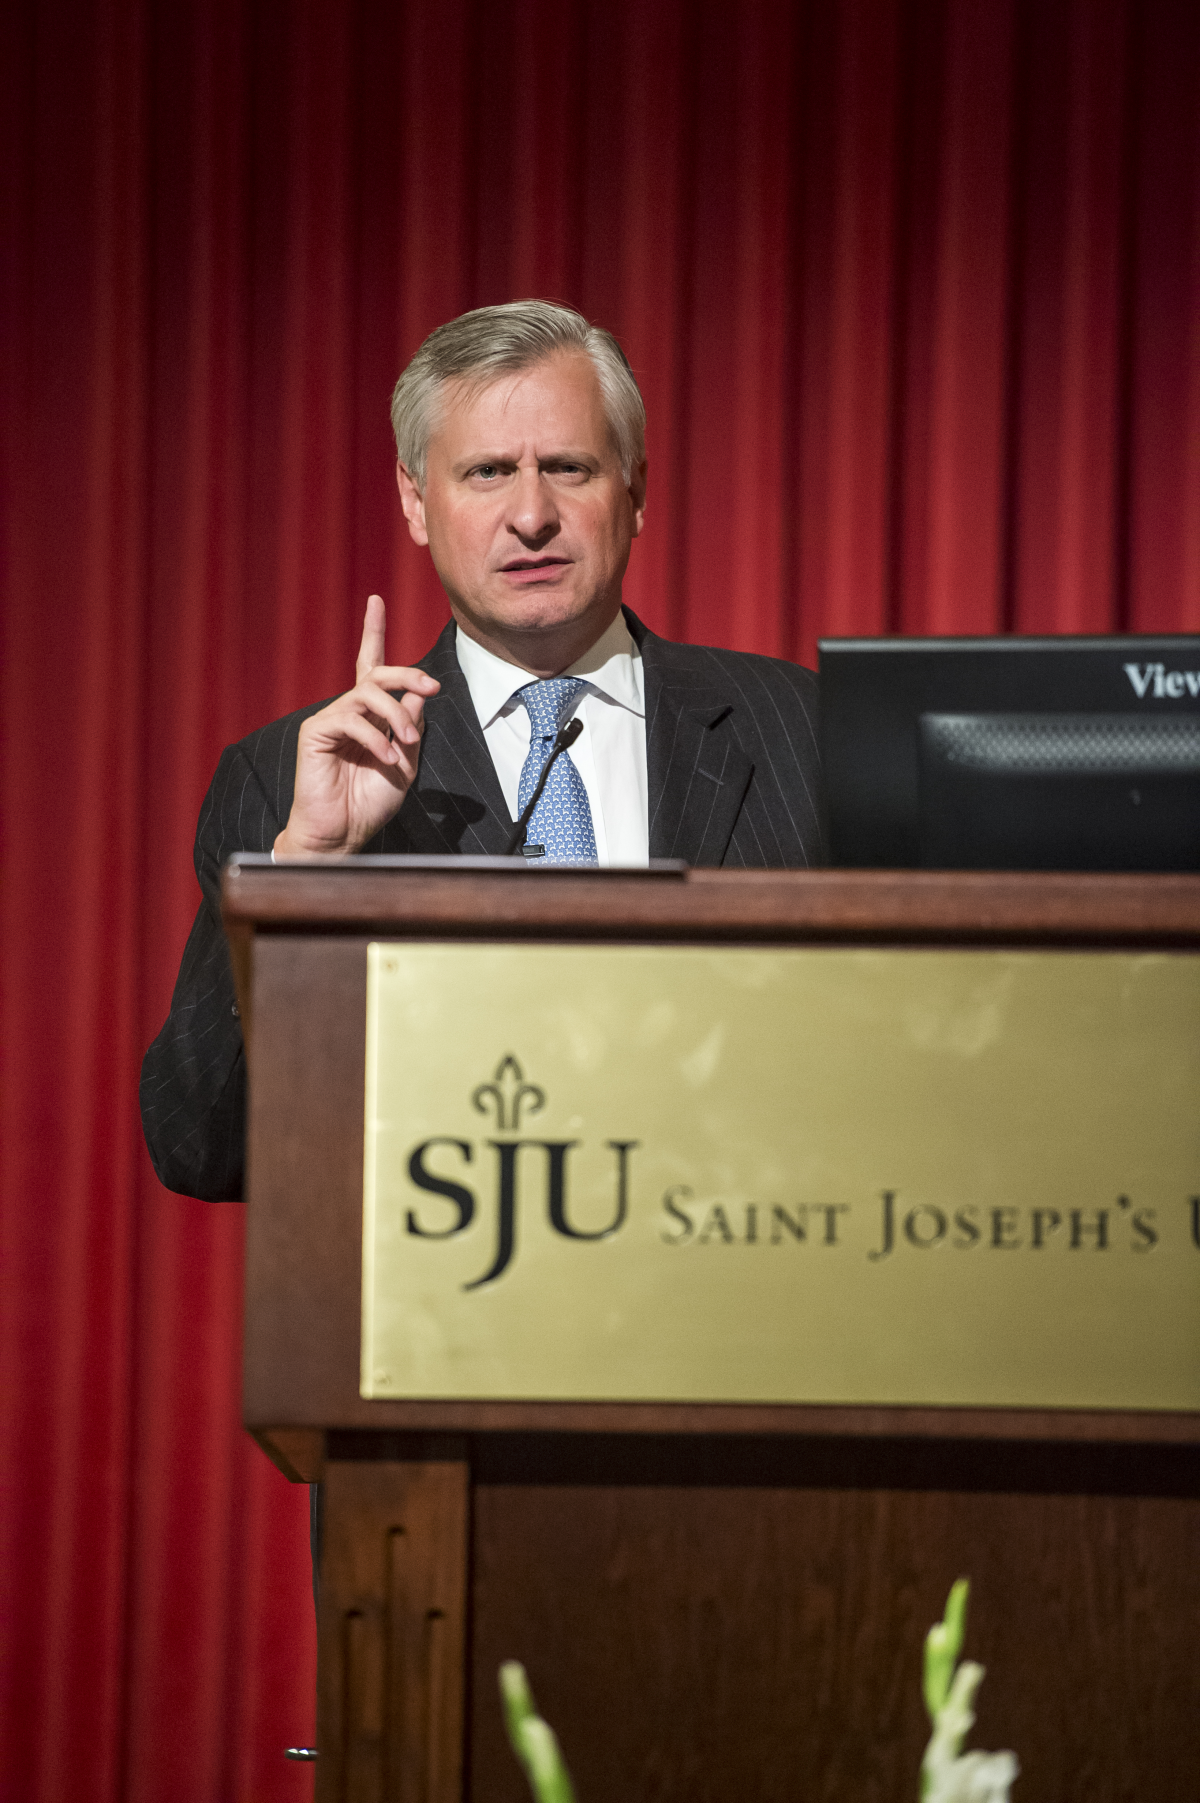 Jon Meacham - Ethical Leadership in Faith, Politics, and Business -